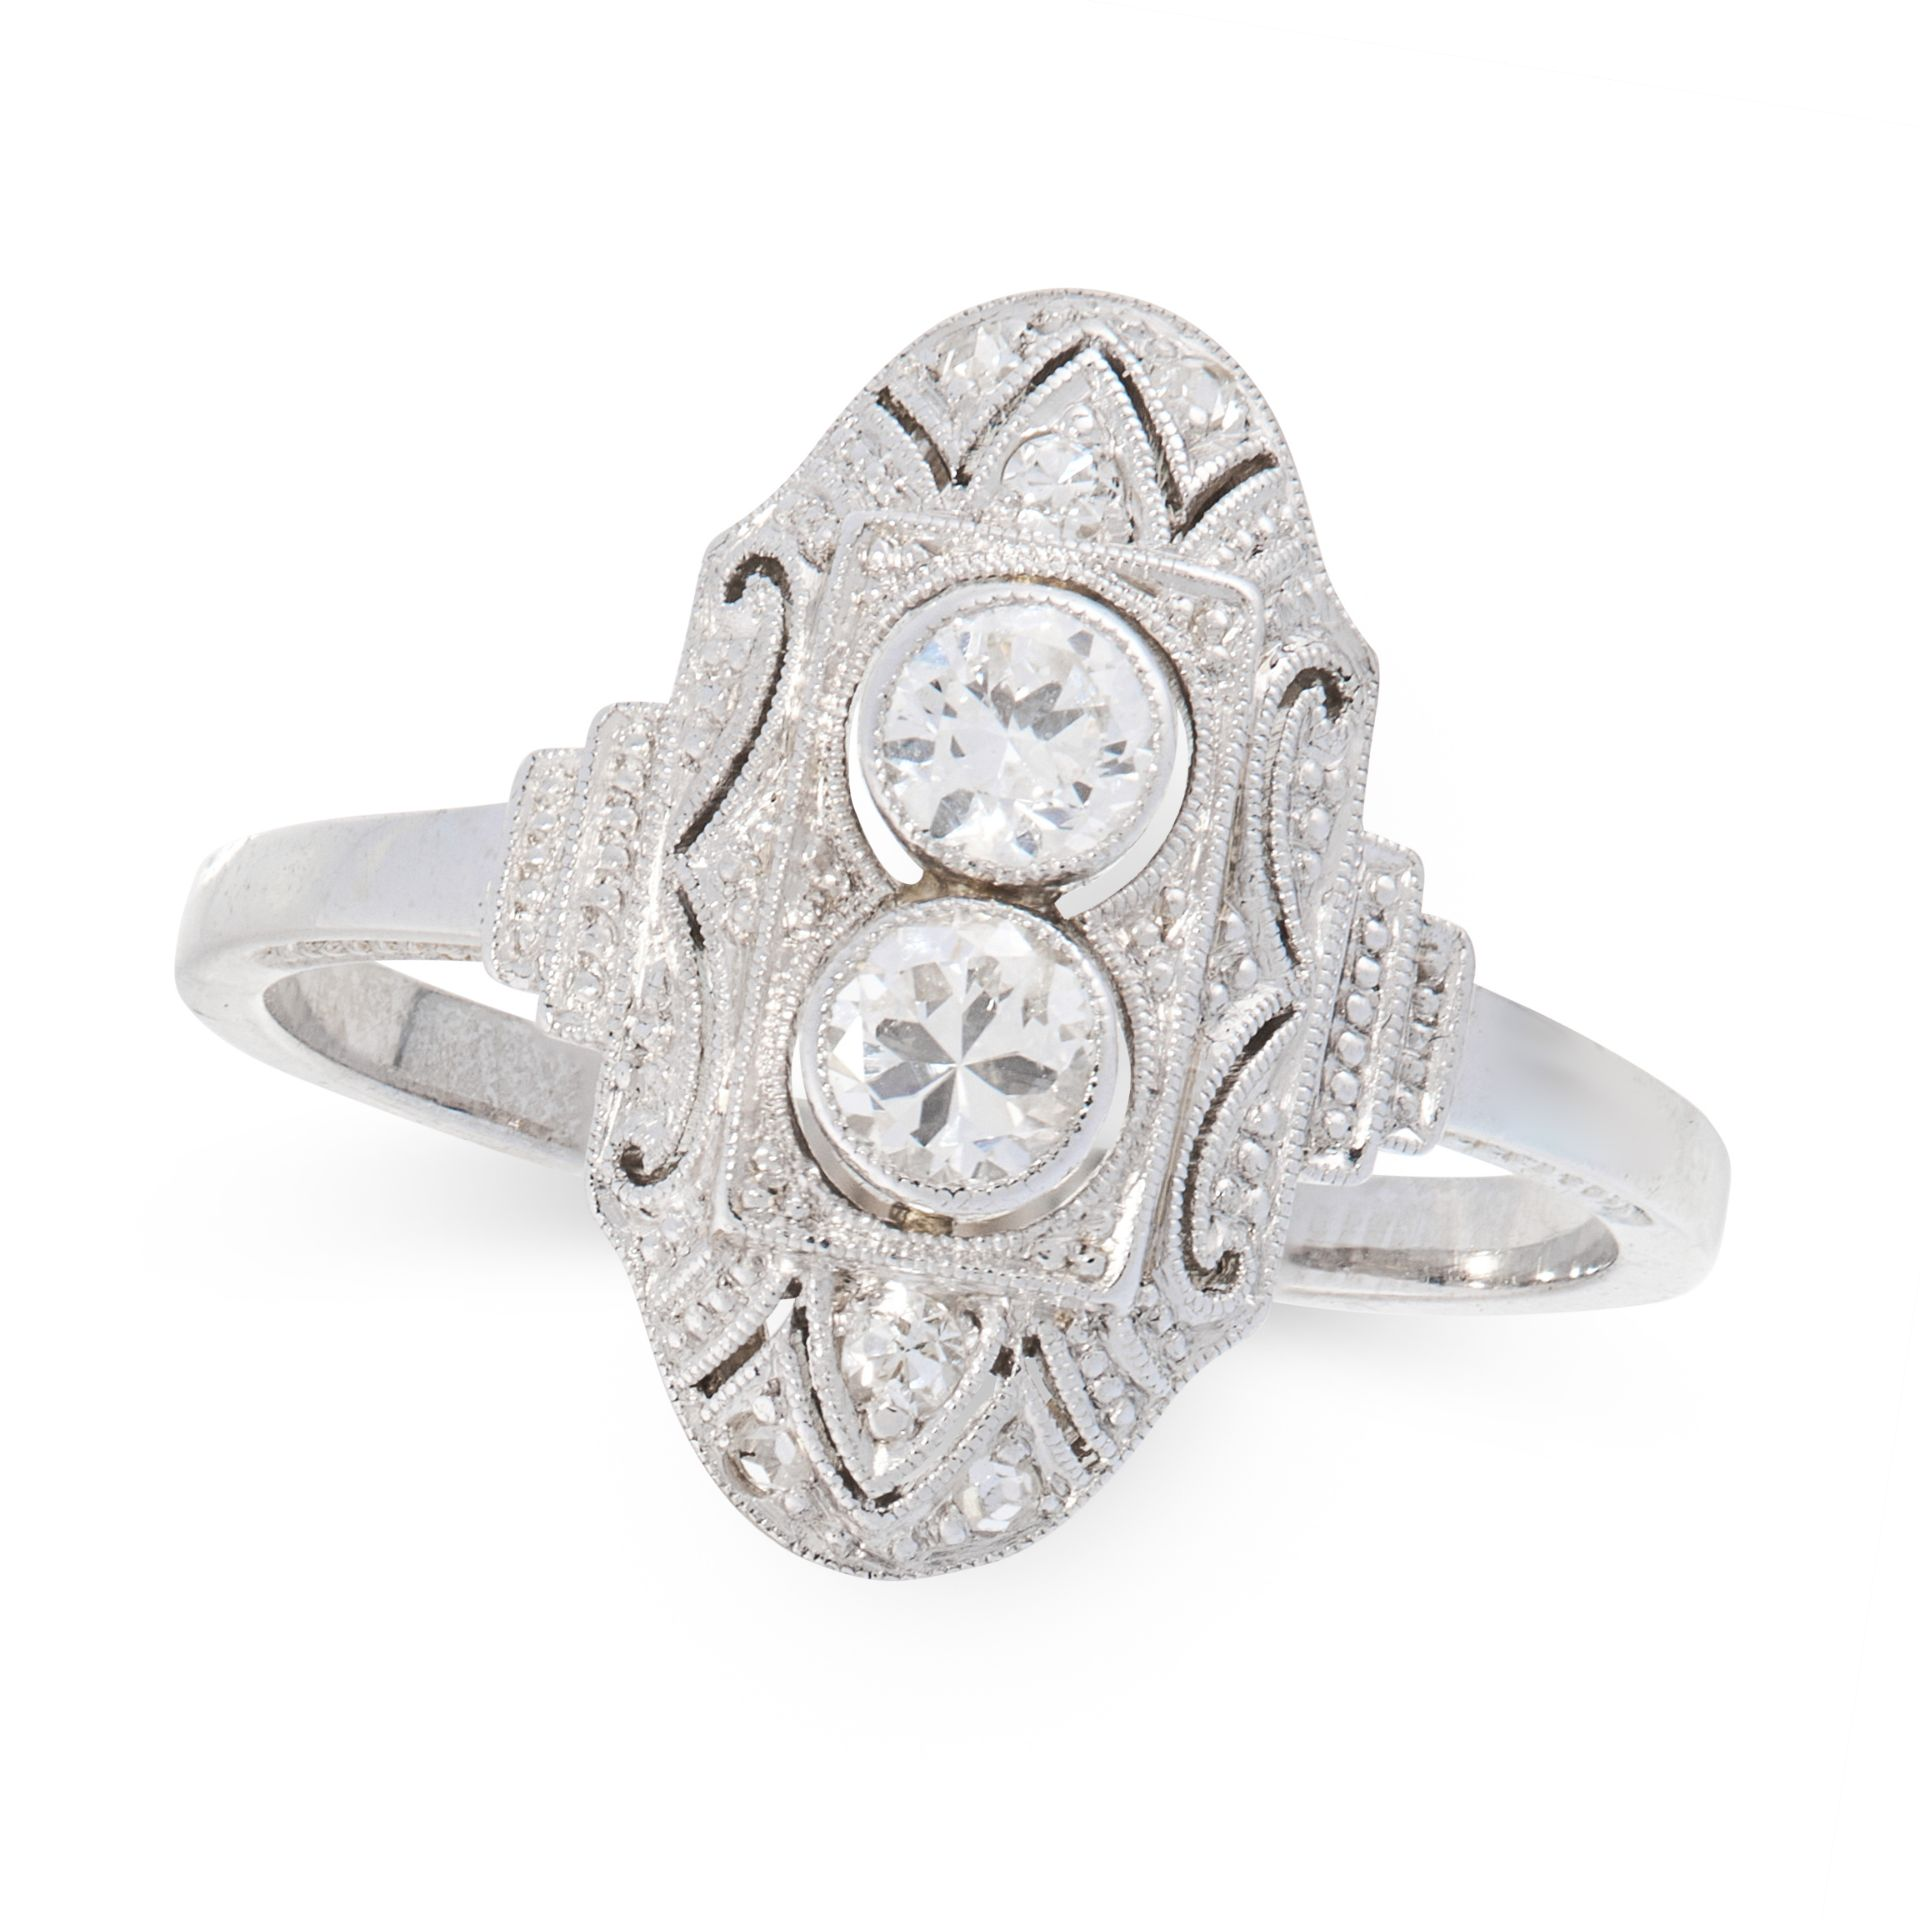 A DIAMOND DRESS RING, CIRCA 1940 in 18ct white gold, the navette shaped face set with two